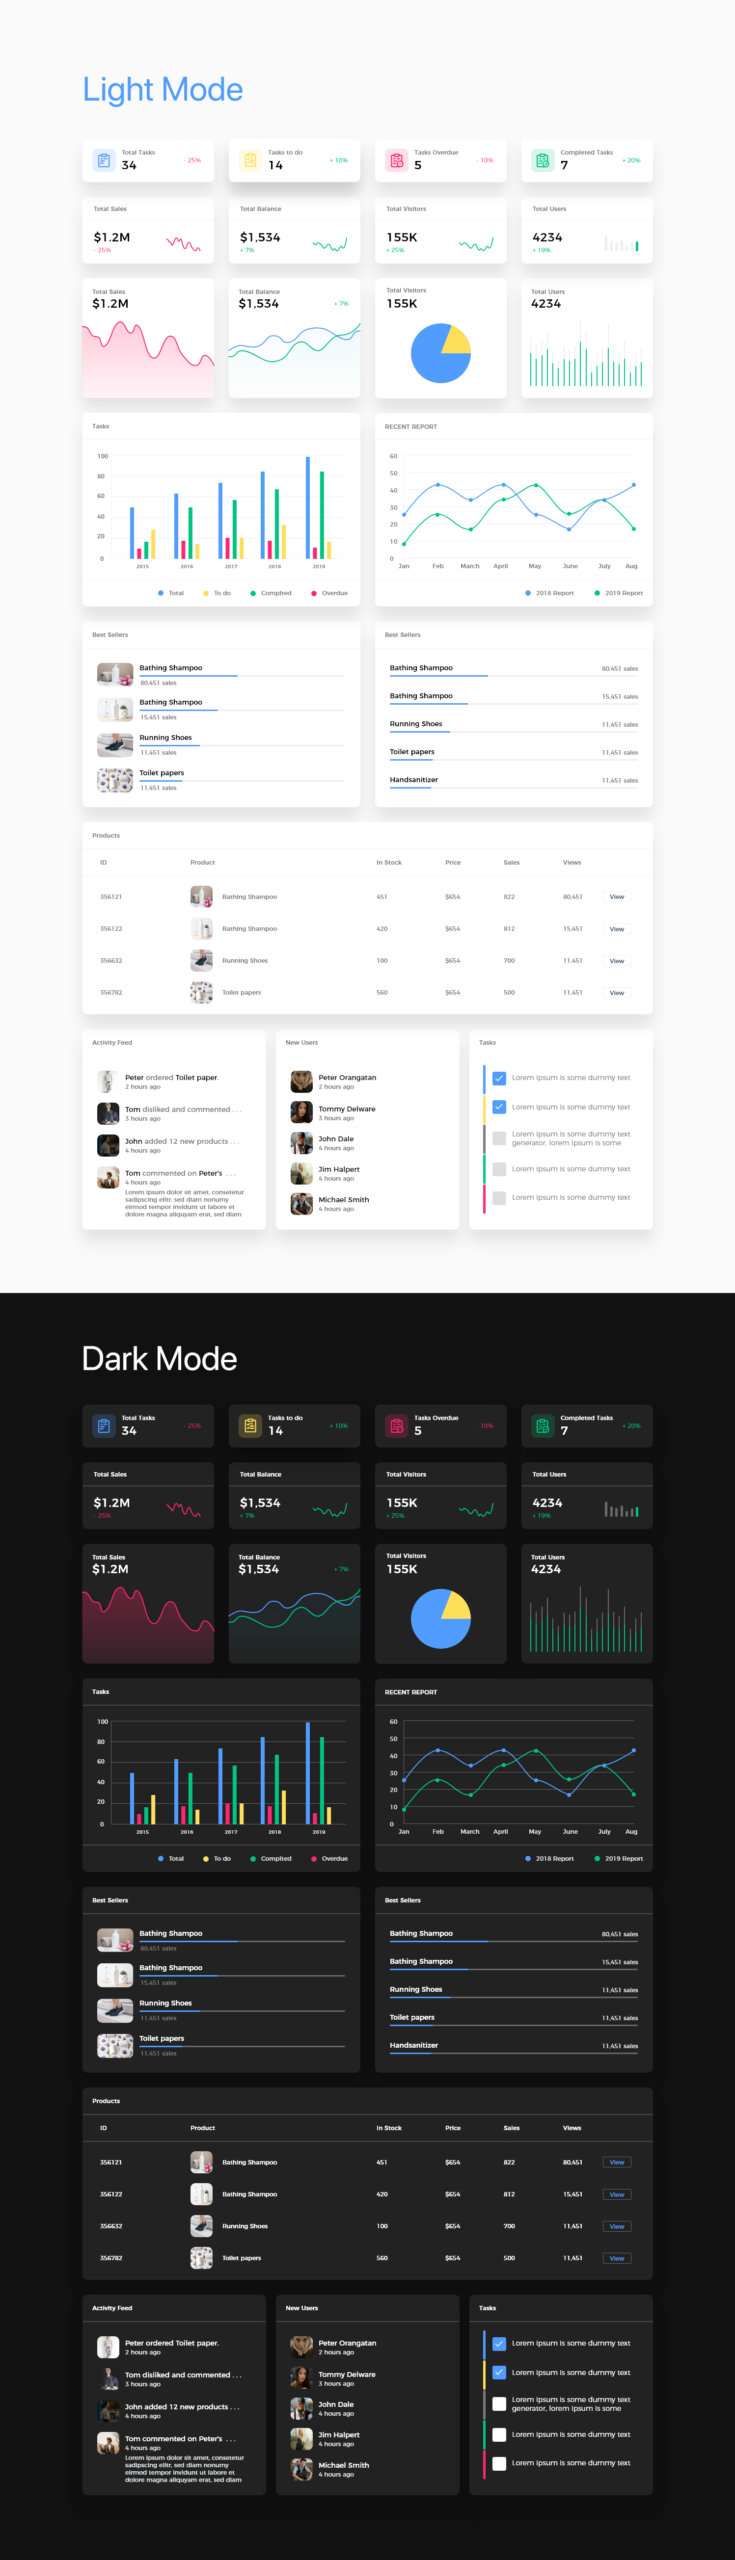 Dashboard Free UI Kit for Adobe XD from UIGarage